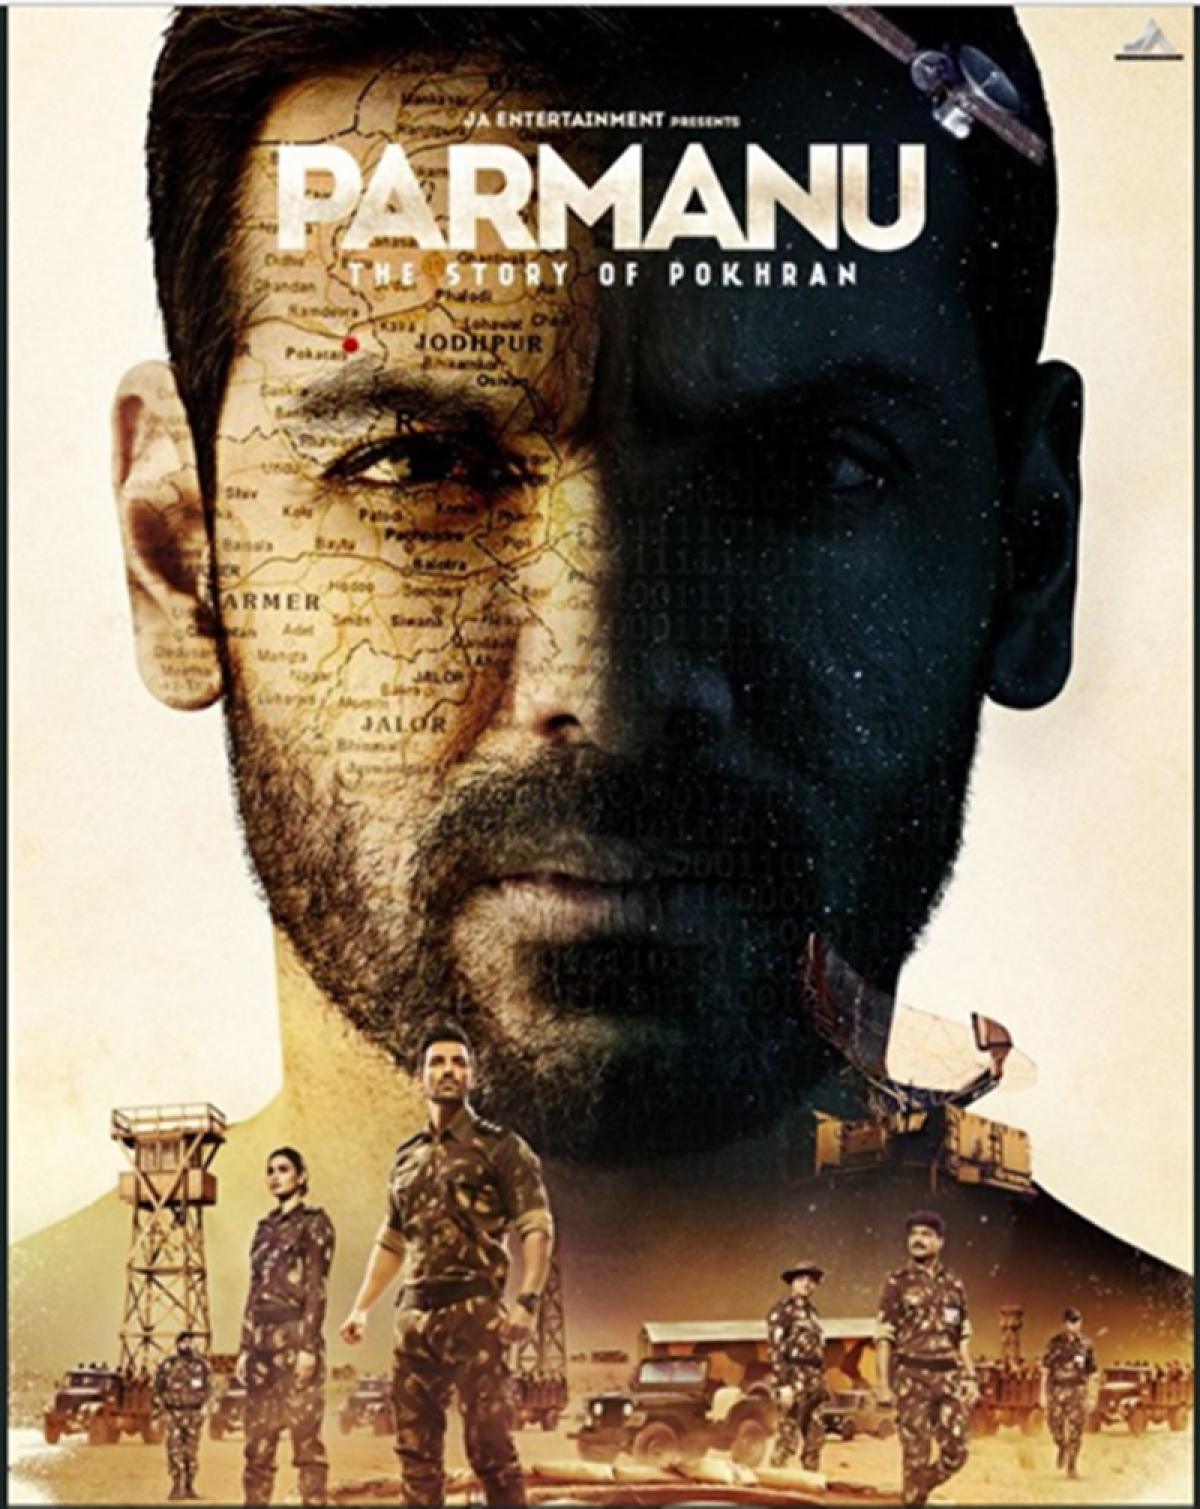 Poster of 'Parmanu: The Story of Pokhran' released, does not mention KriArj and Zee as squabble continues